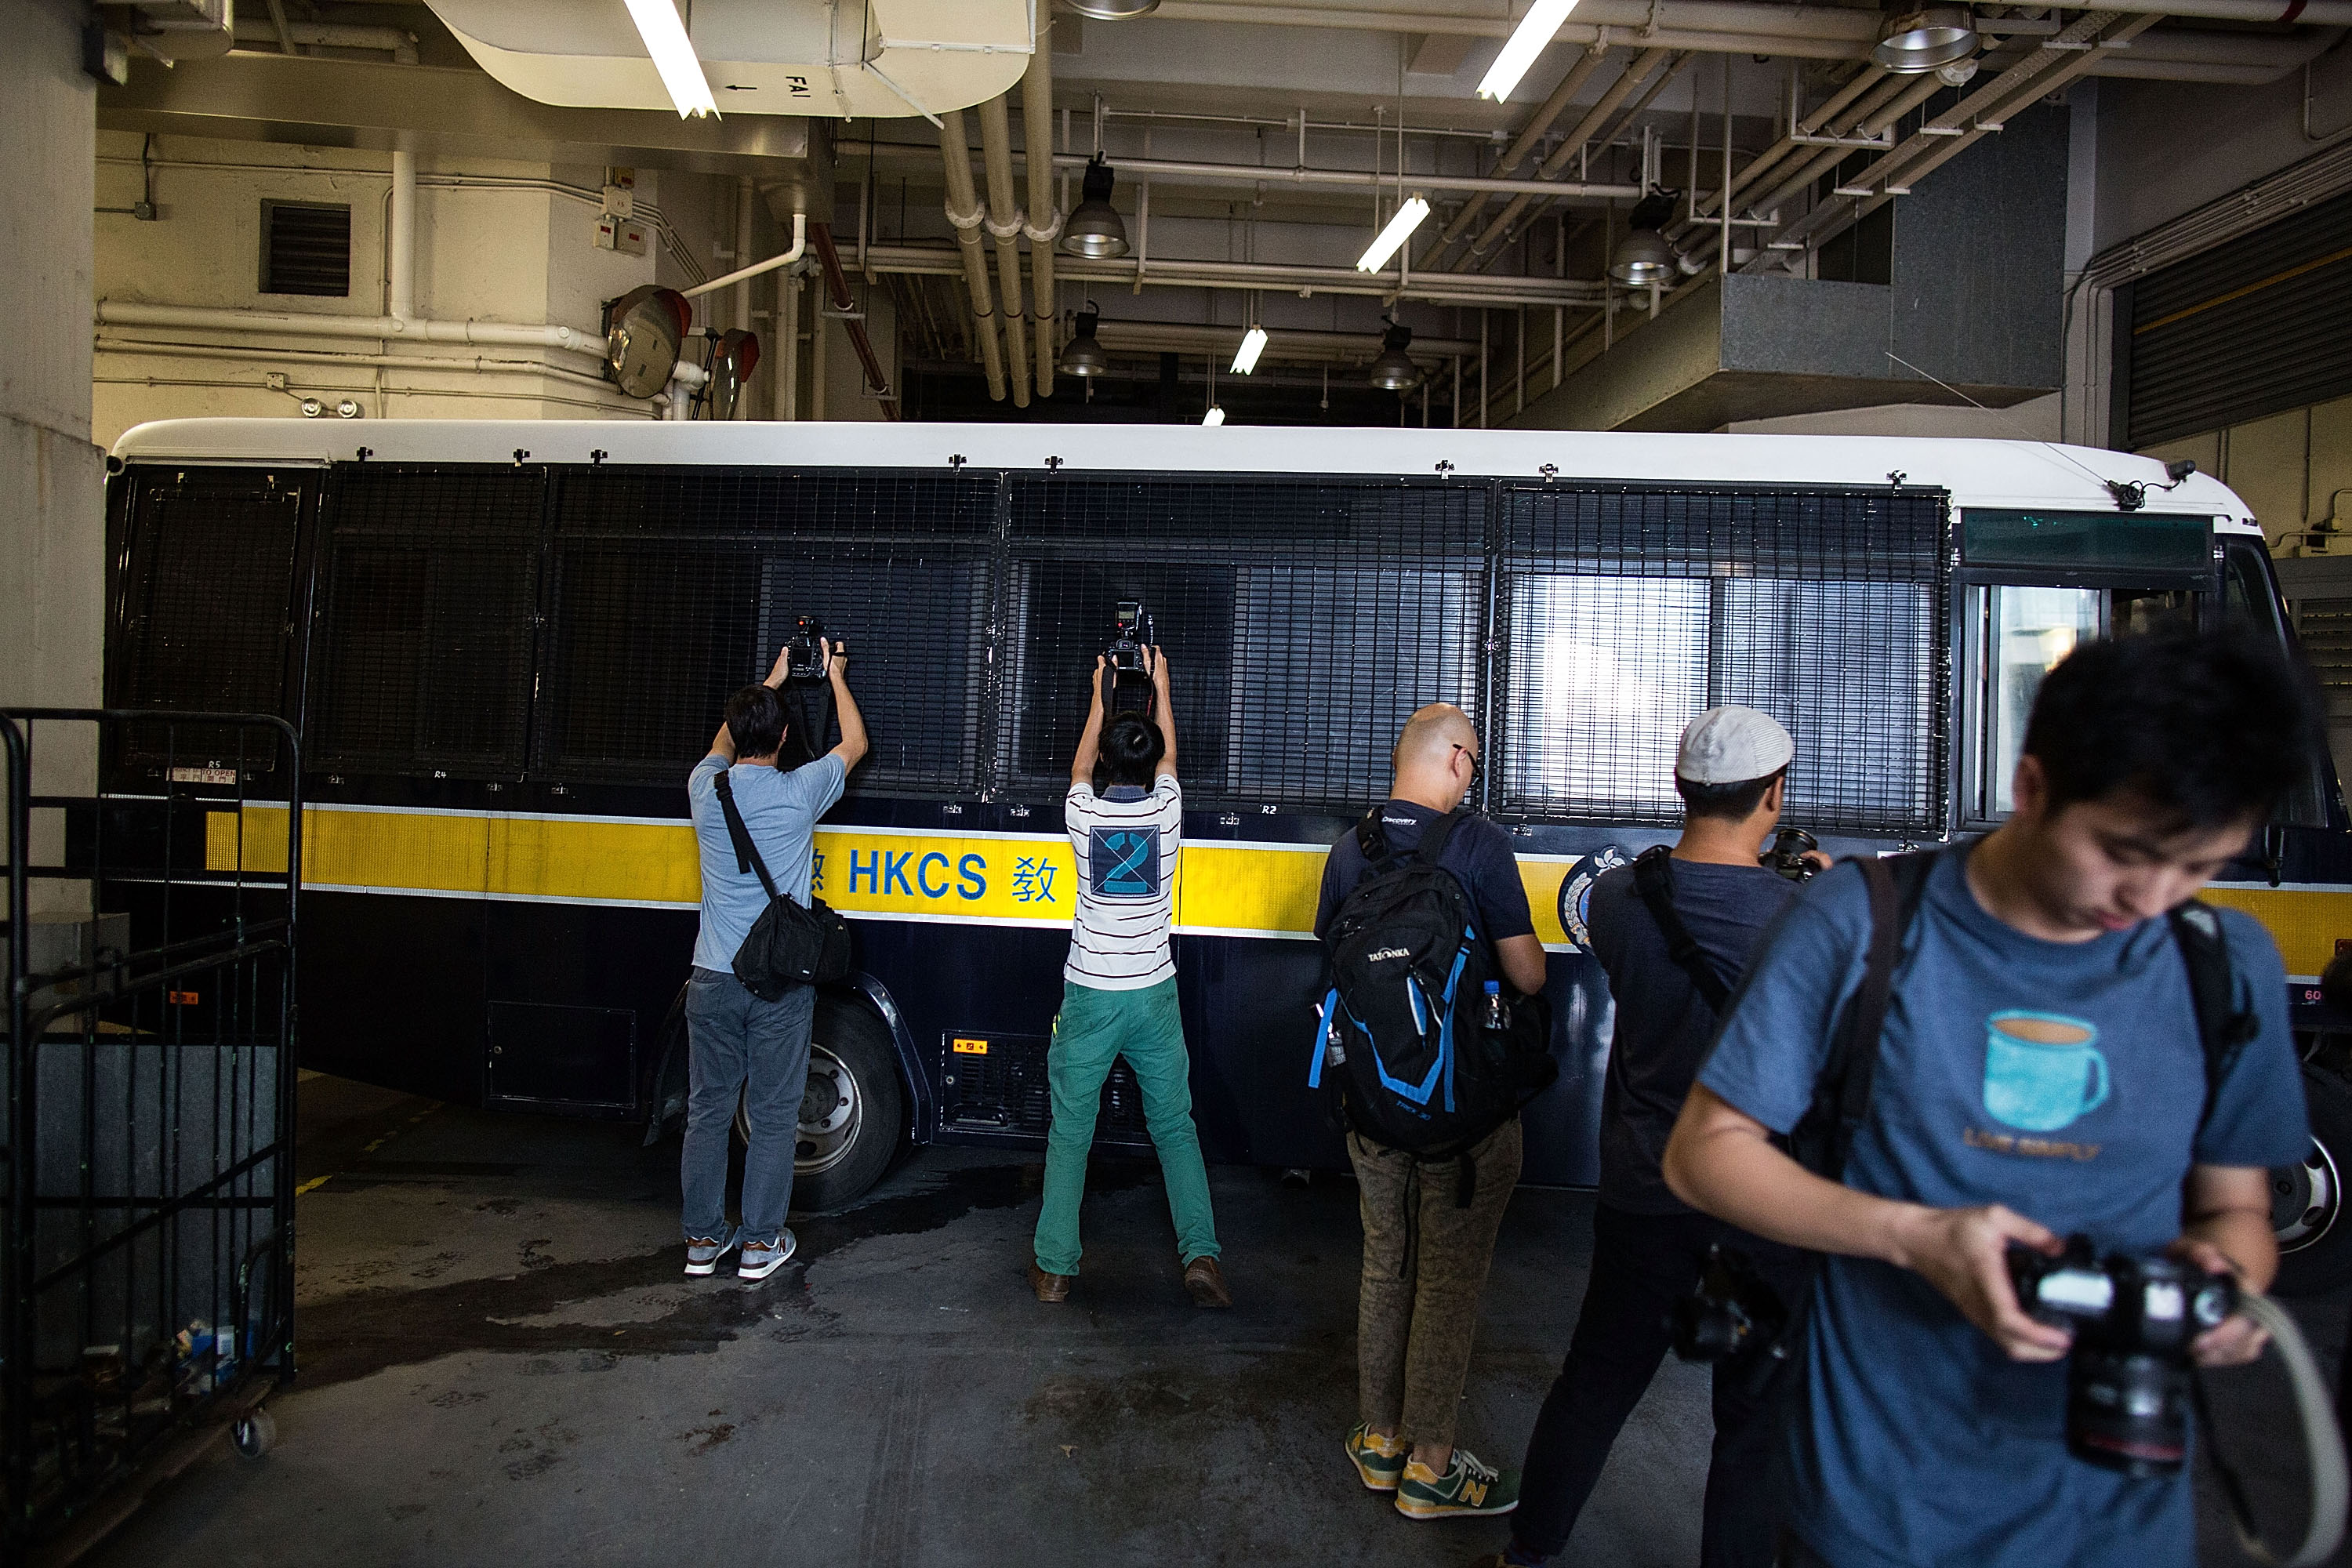 Journalists take photographs when a prison vehicle escorting Rurik Jutting leaves the High Court on Oct. 24, 2016, in Hong Kong